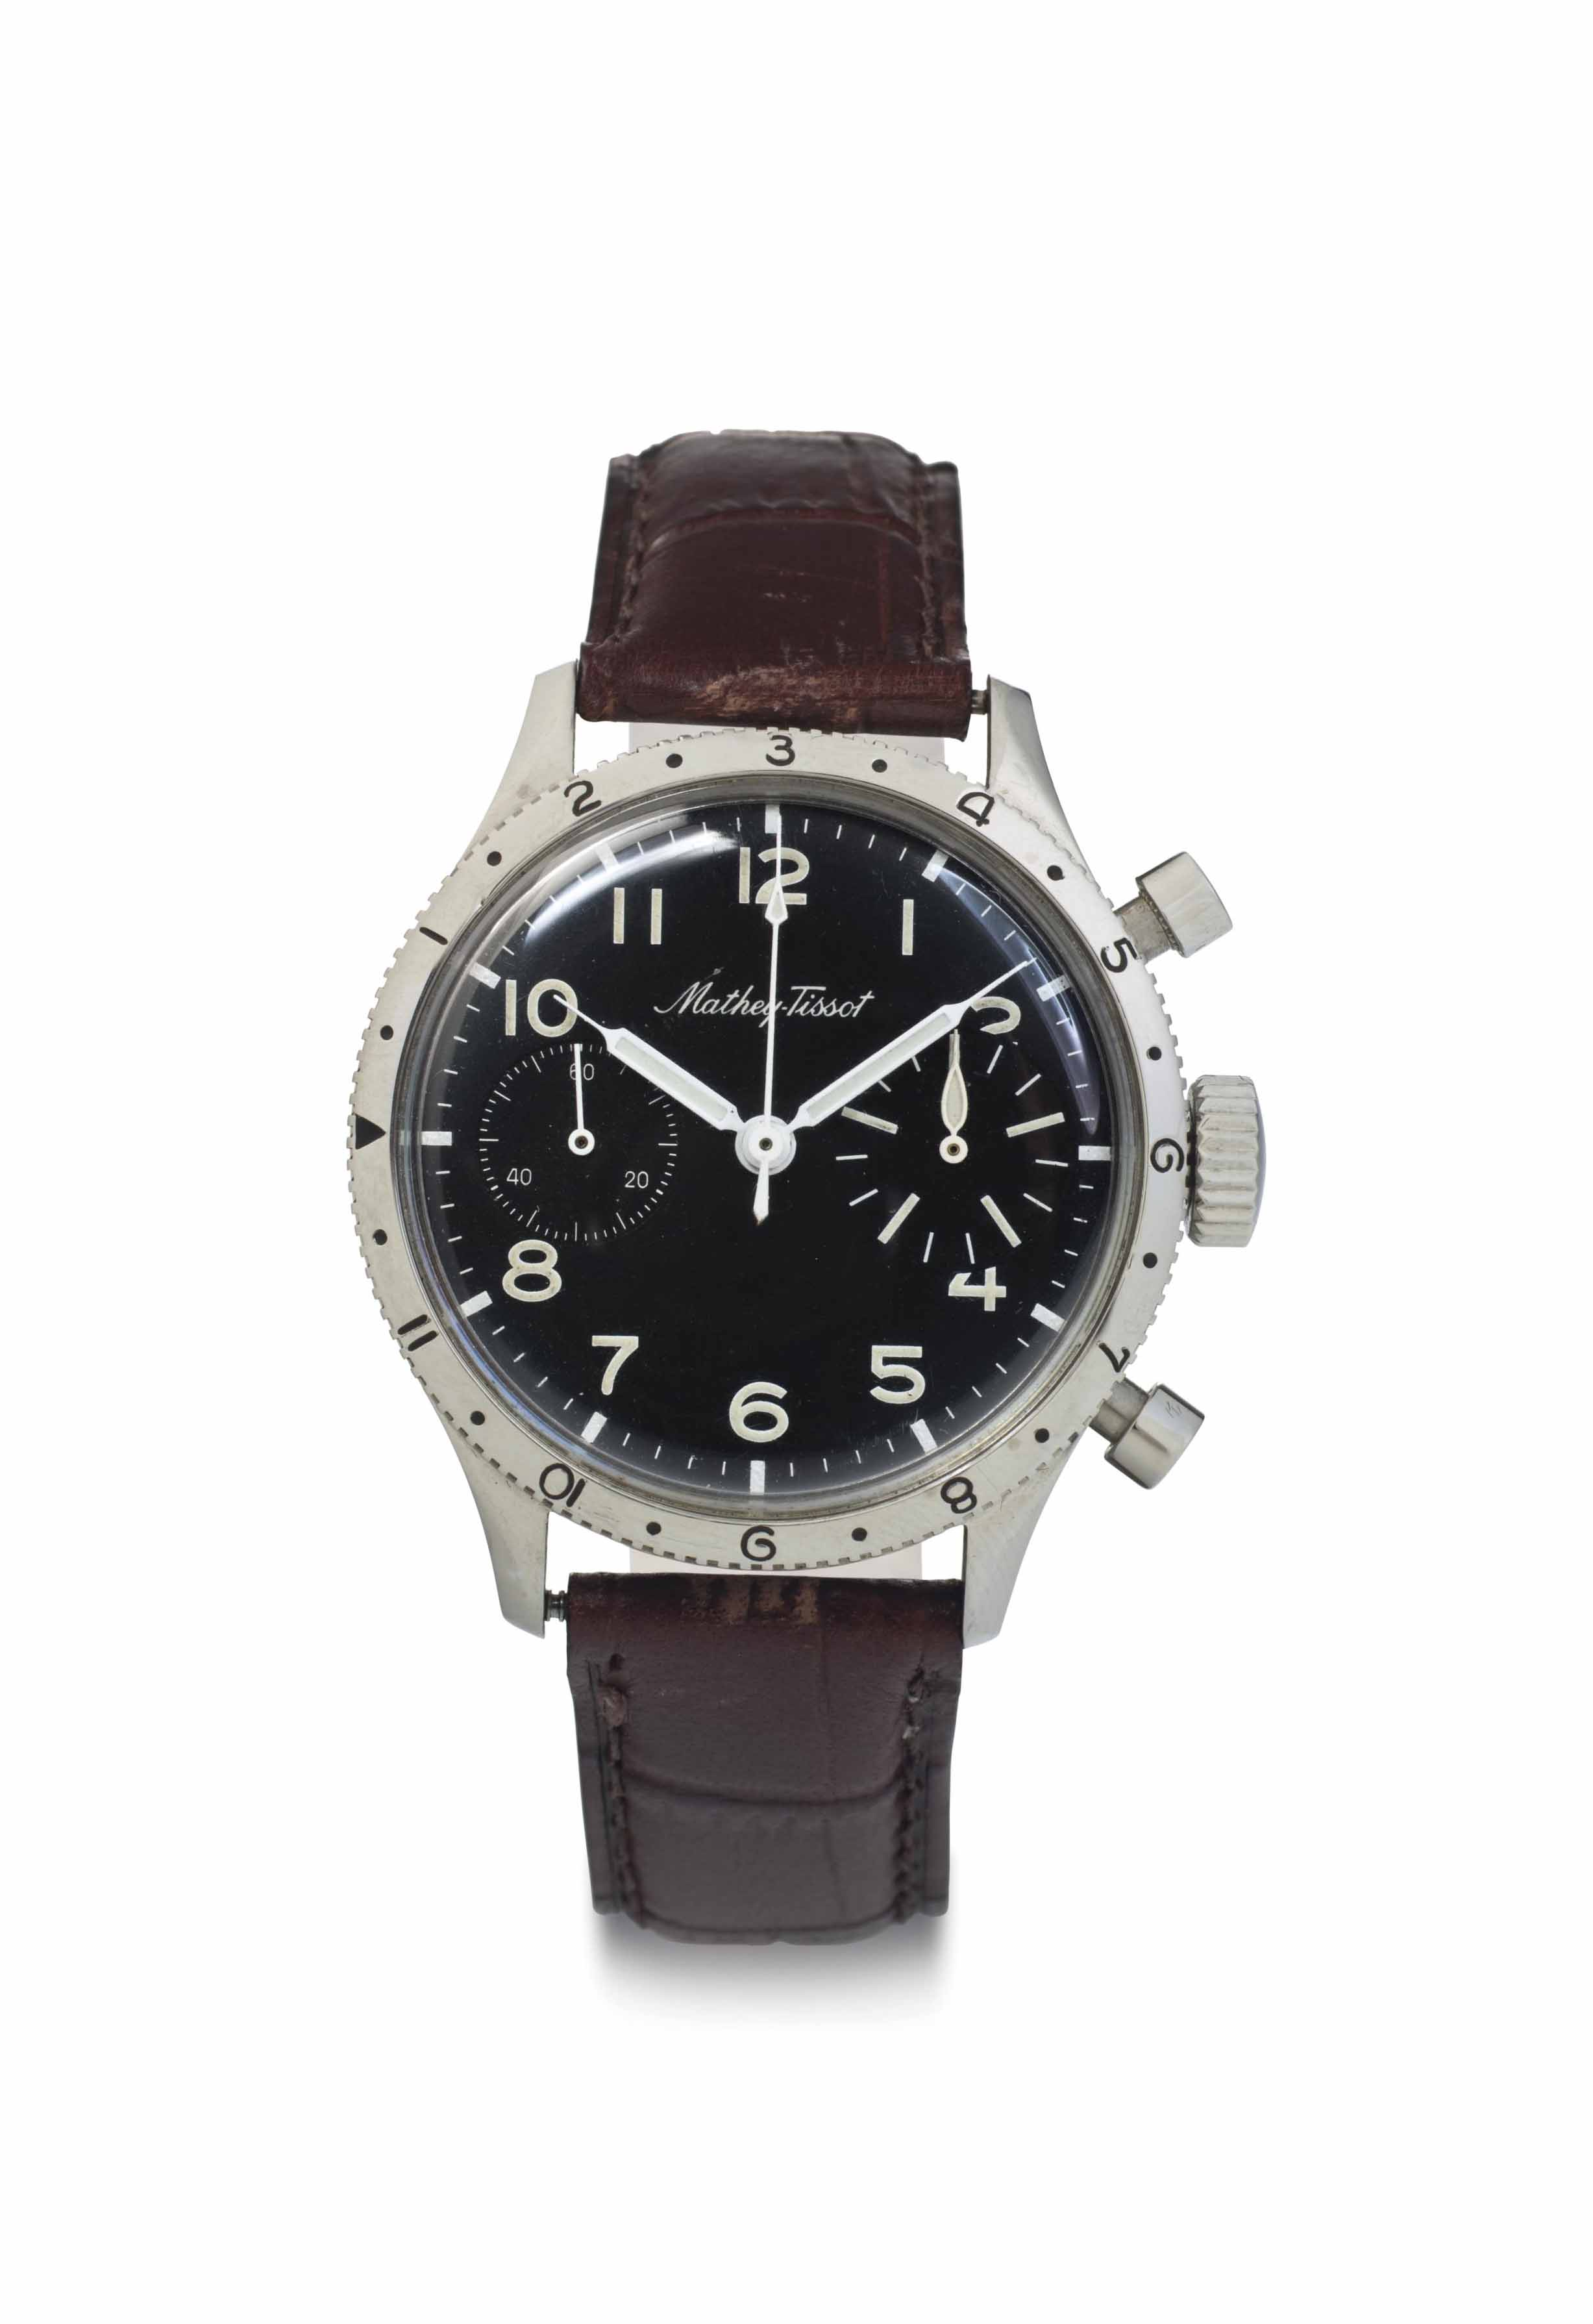 E. Mathey Tissot. A Rare Stainless Steel Flyback Chronograph Wristwatch with Black Dial